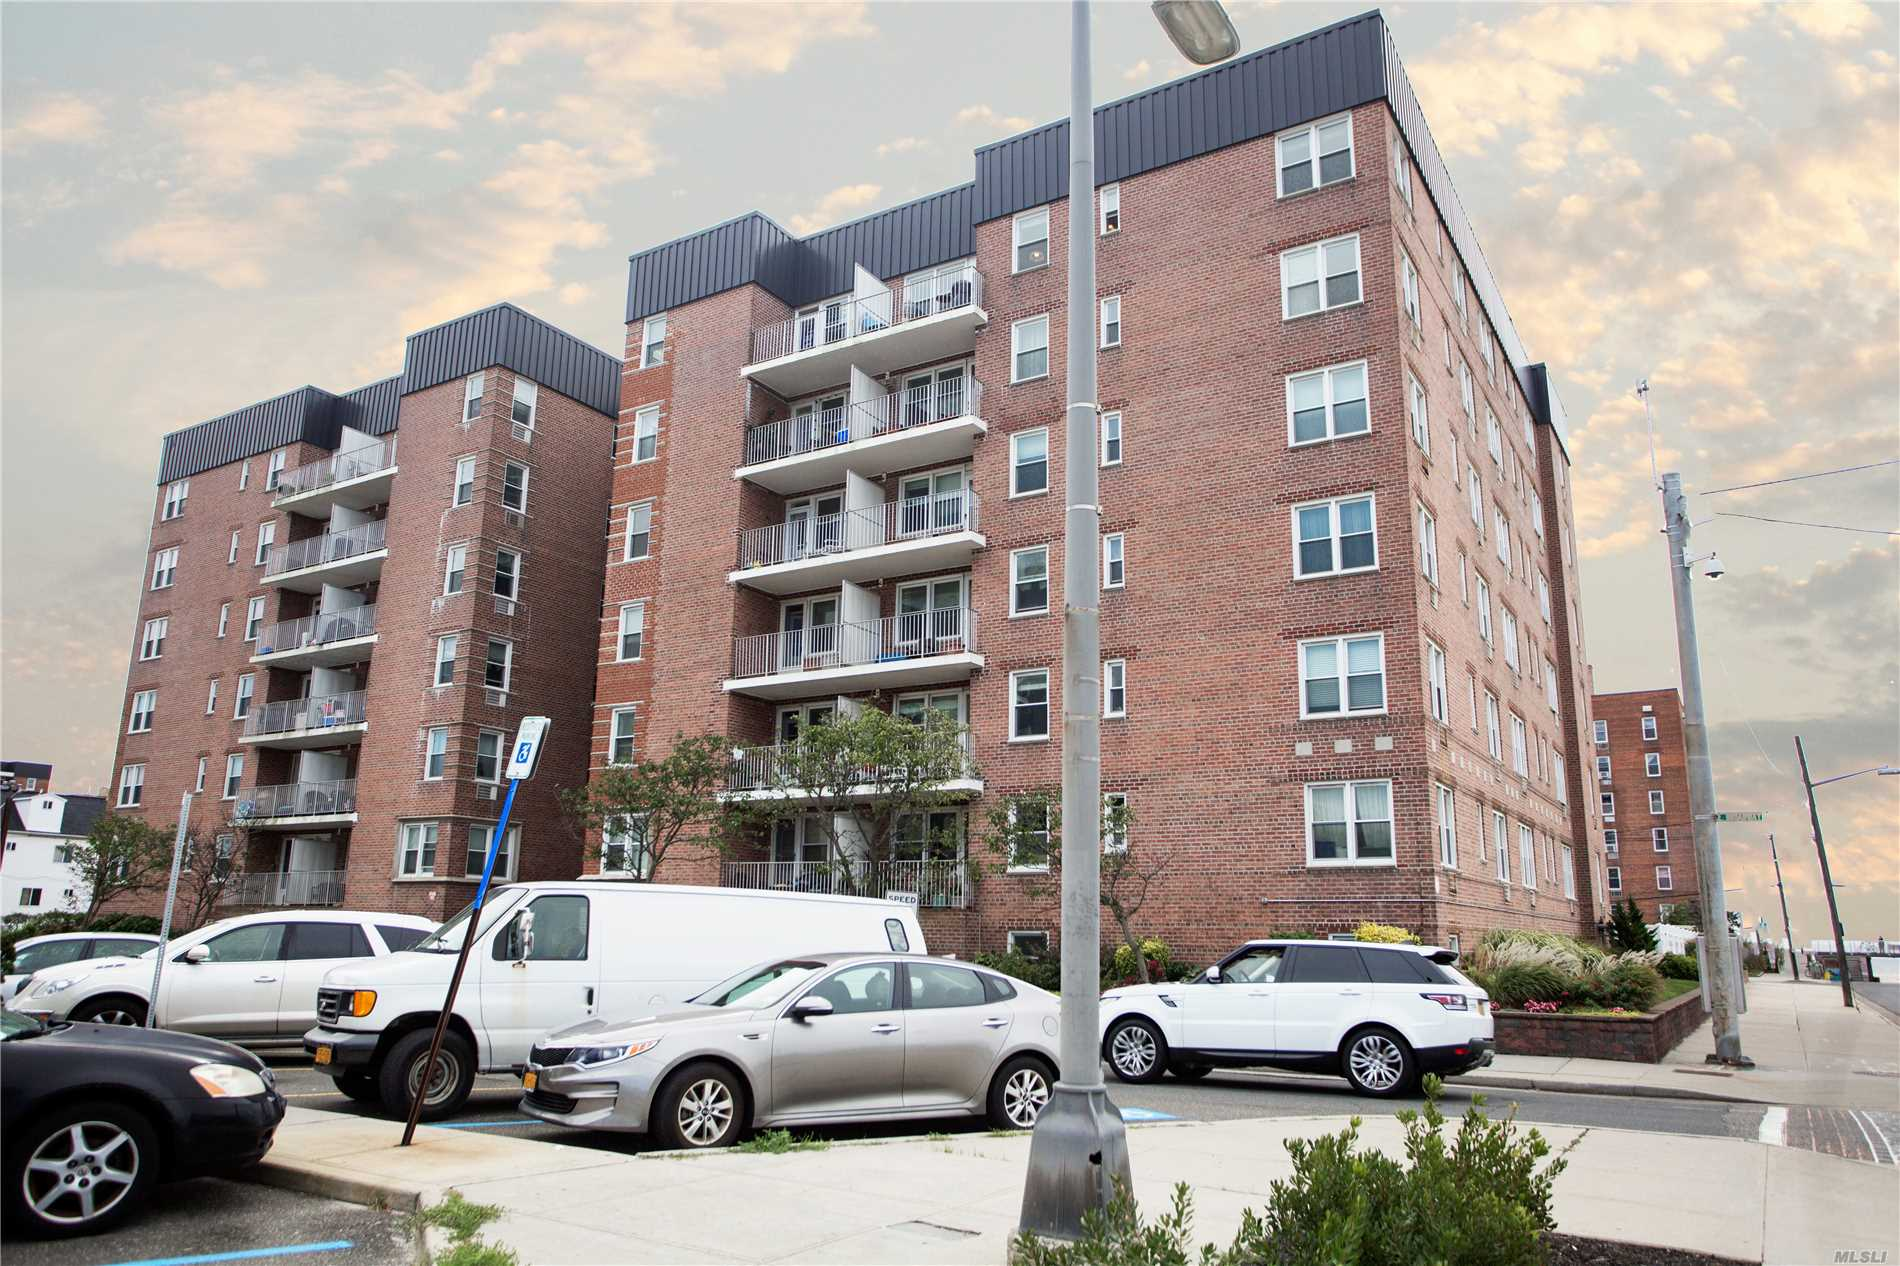 Property for sale at 210 E Broadway, Long Beach,  NY 11561